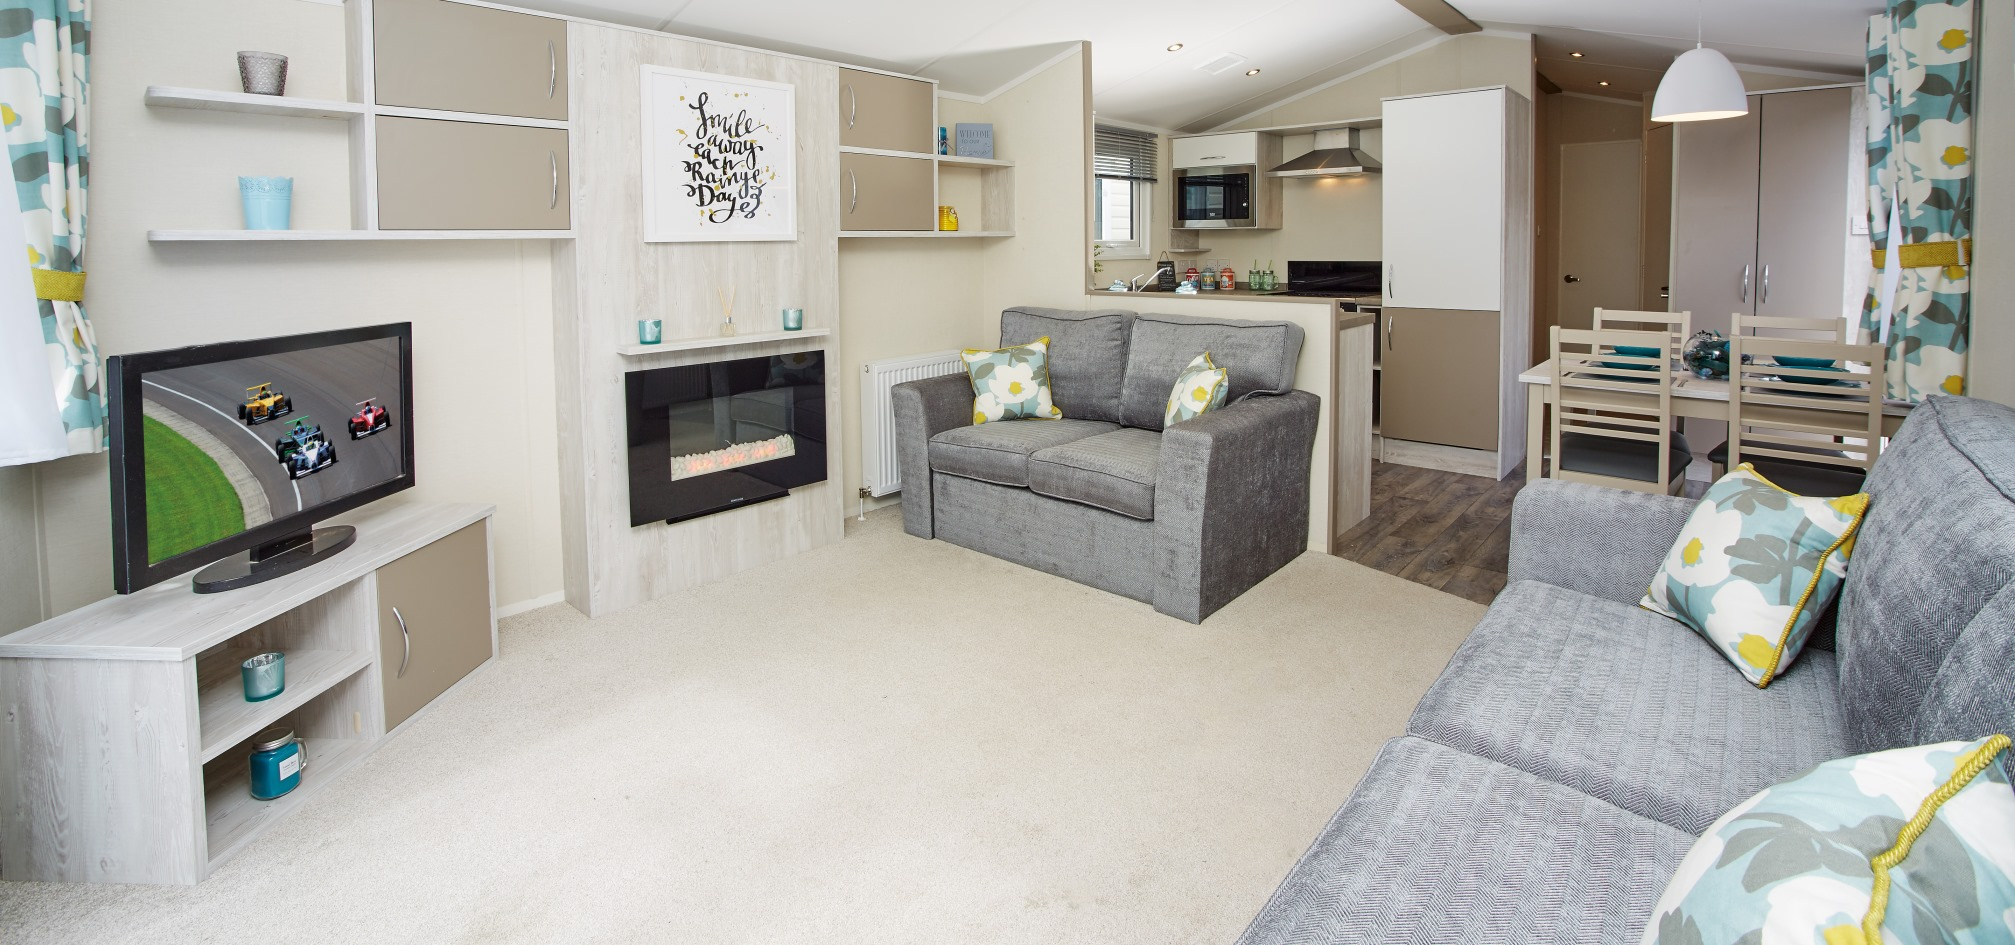 wide angle view of a holiday home with dining table, kitchen and living room in an open plan space. All nicely furnished.